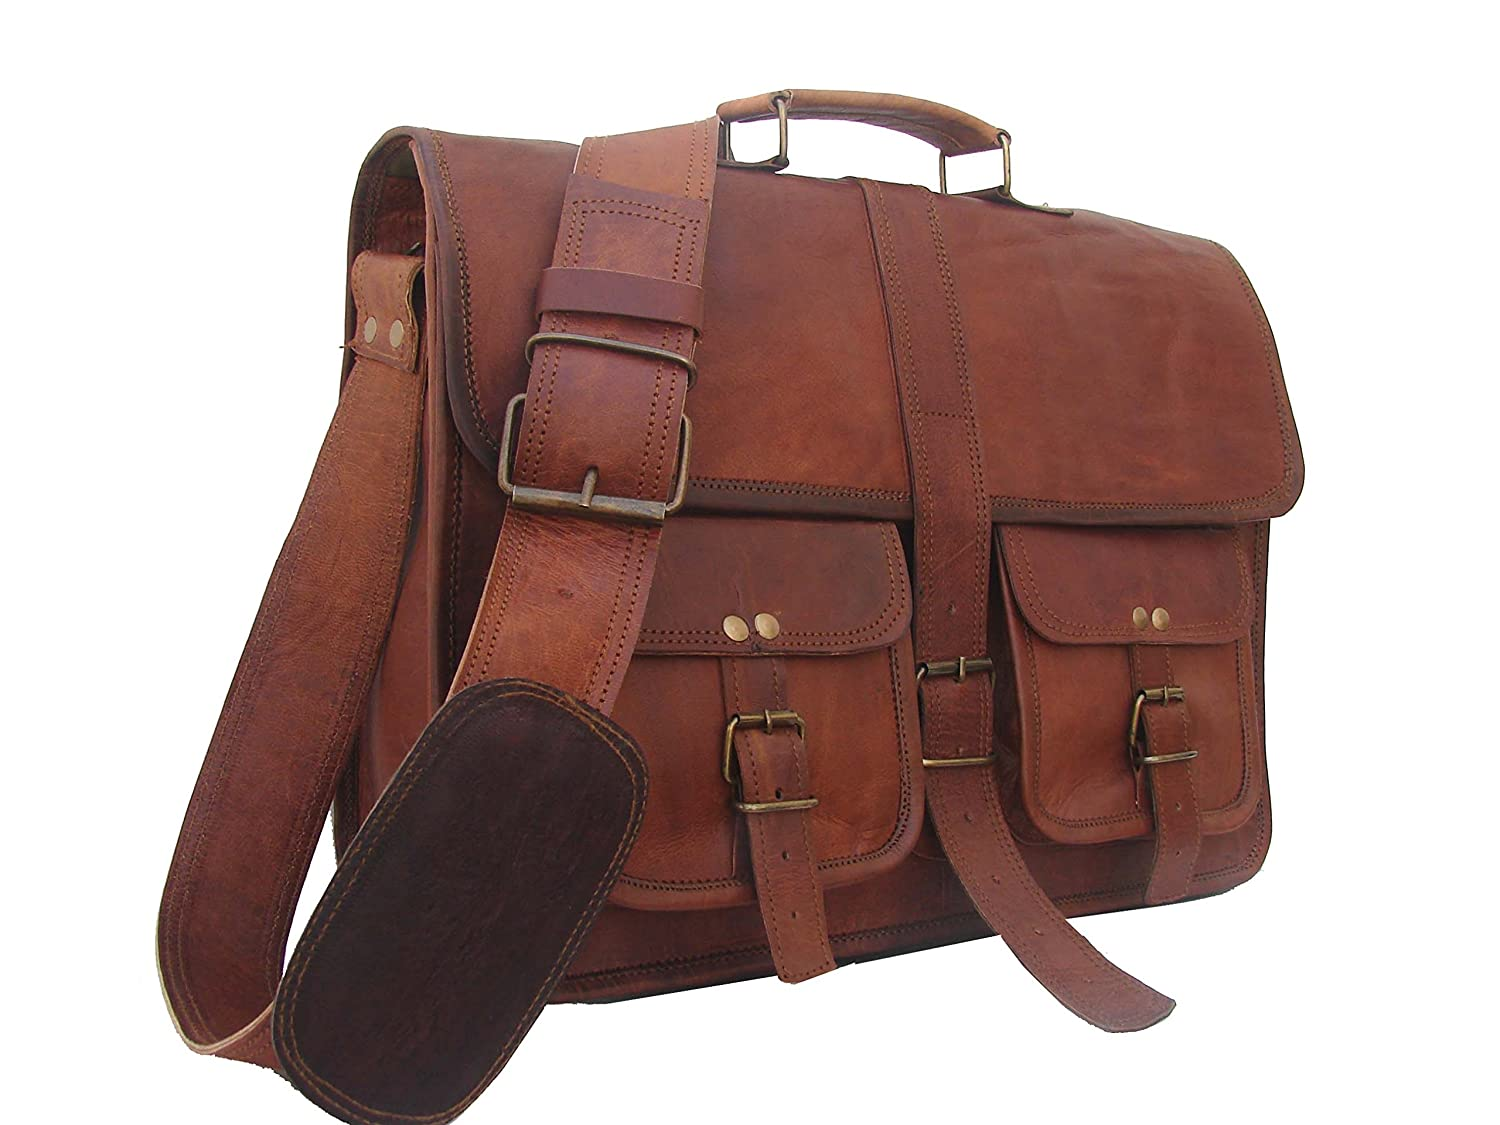 New 16 Vintage leather Messenger Bag for Mens Laptop Bag Office Briefcase